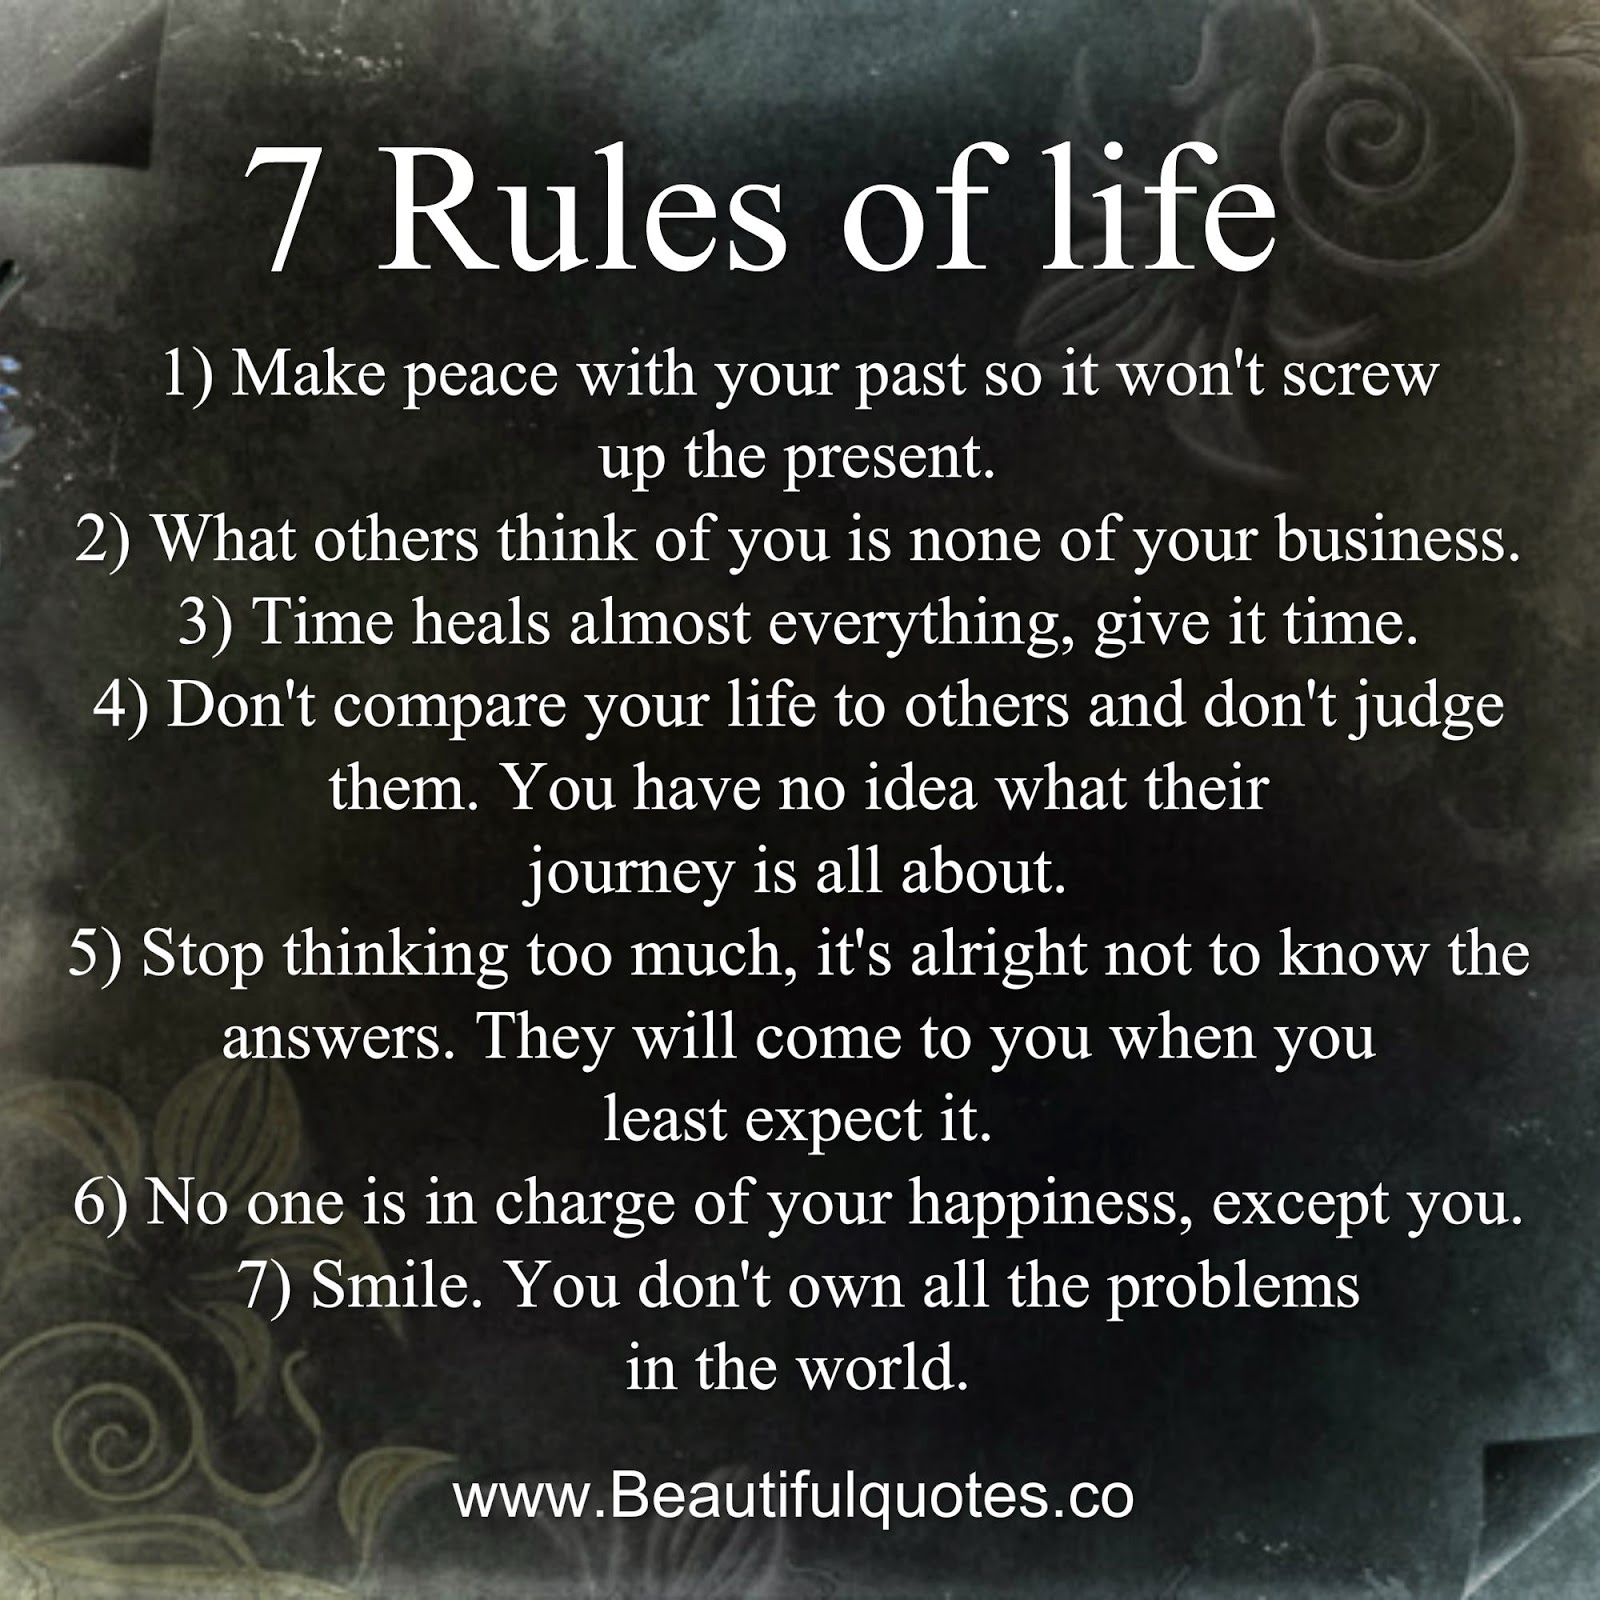 7 Rules Of Life Quote Beautiful Quotes 7 Rules Of Life